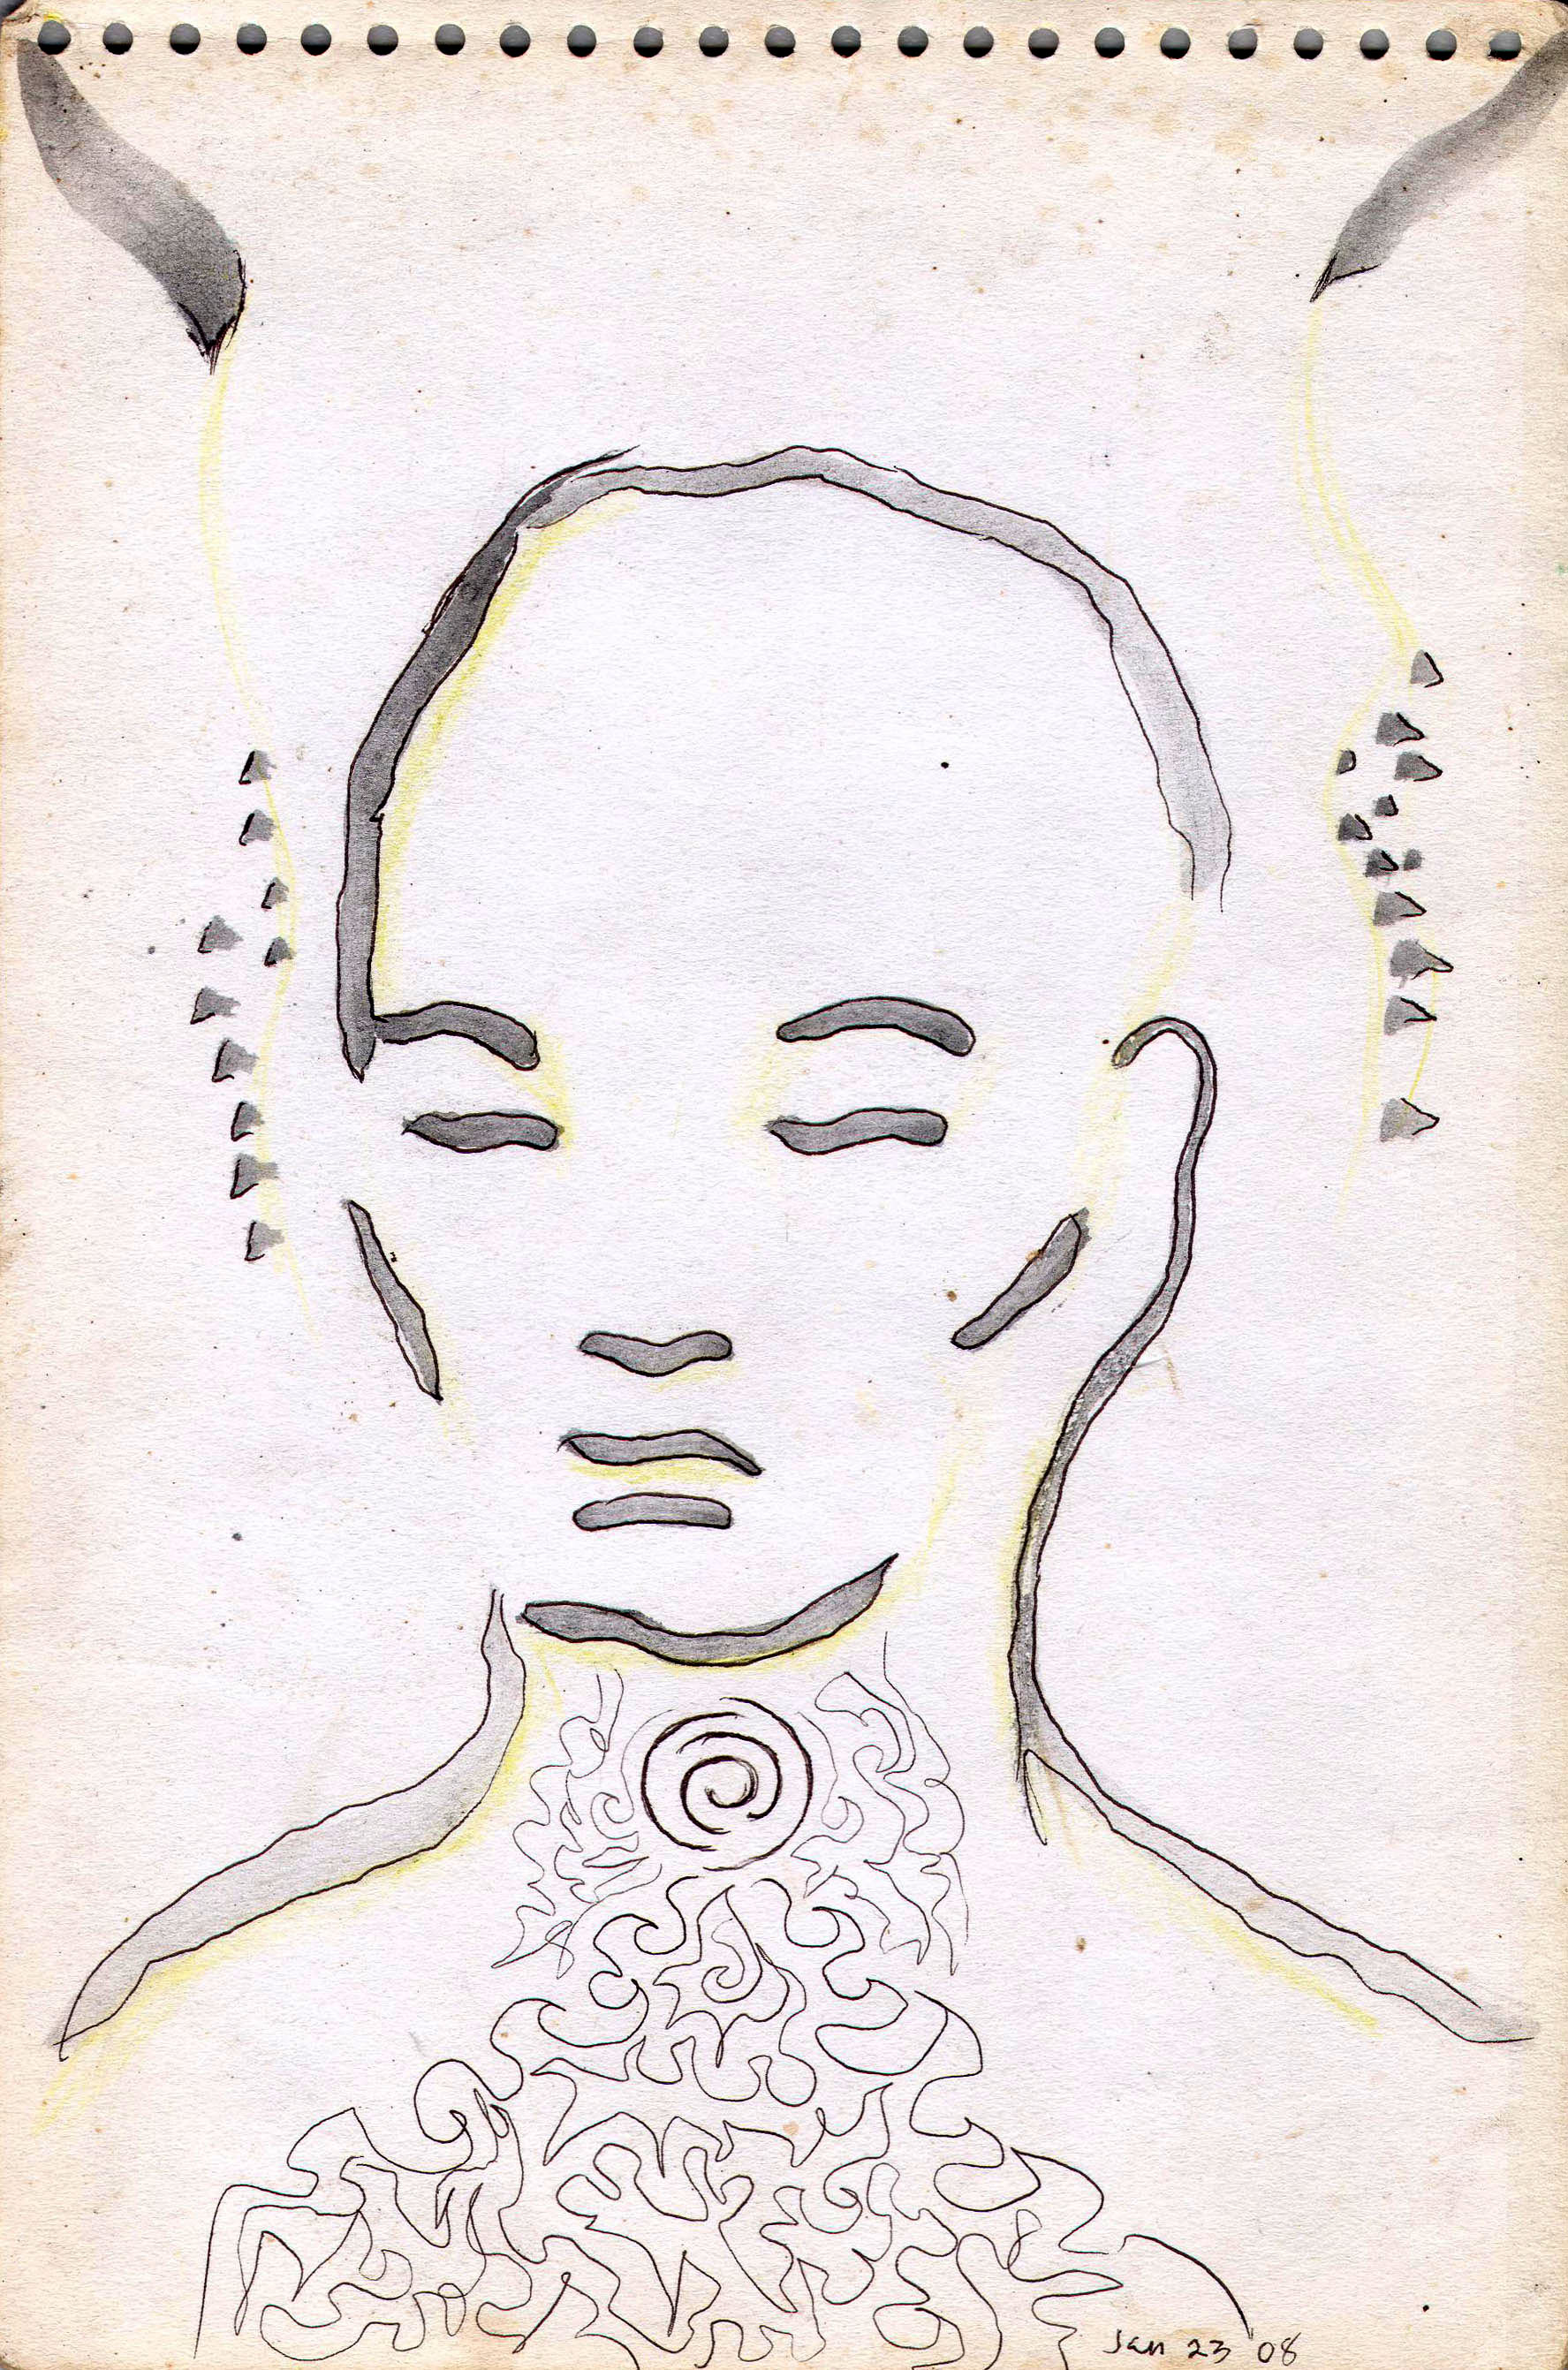 Sketches from the source by a Philippine shaman Bong Delatorre 09